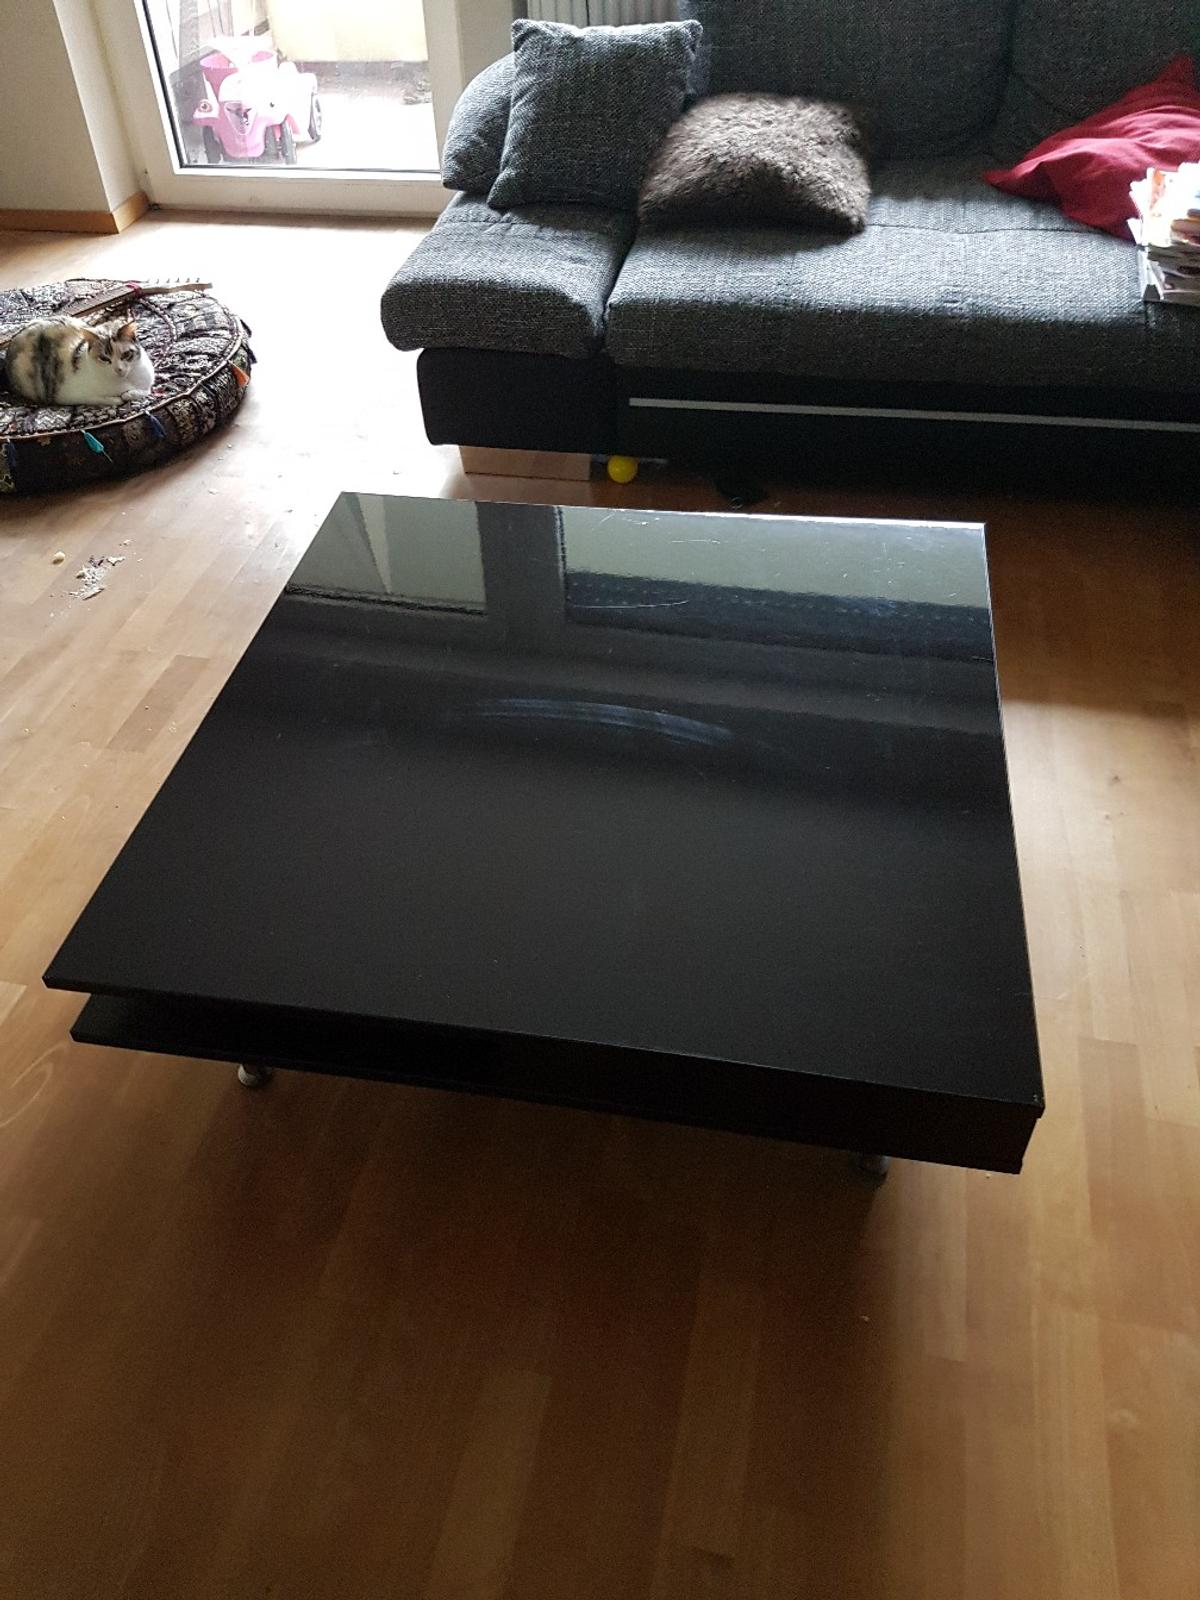 Ikea Couchtisch Tofteryd Hochglanz Schwarz In 41564 Kaarst For 50 00 For Sale Shpock